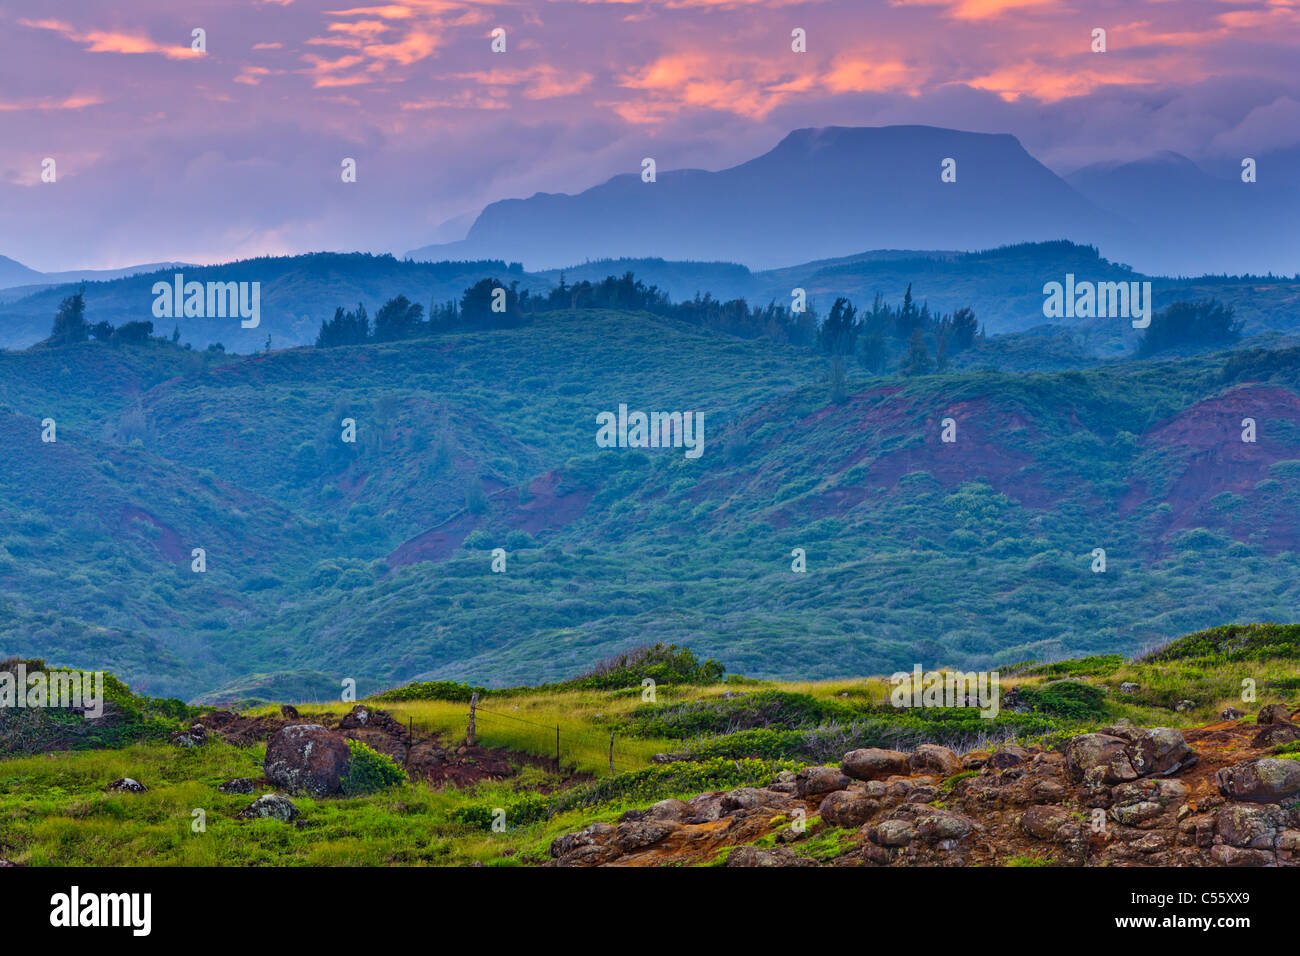 Pasture with mountains in the background, Haleakala, Hawea Point, Maui, Hawaii, USA - Stock Image